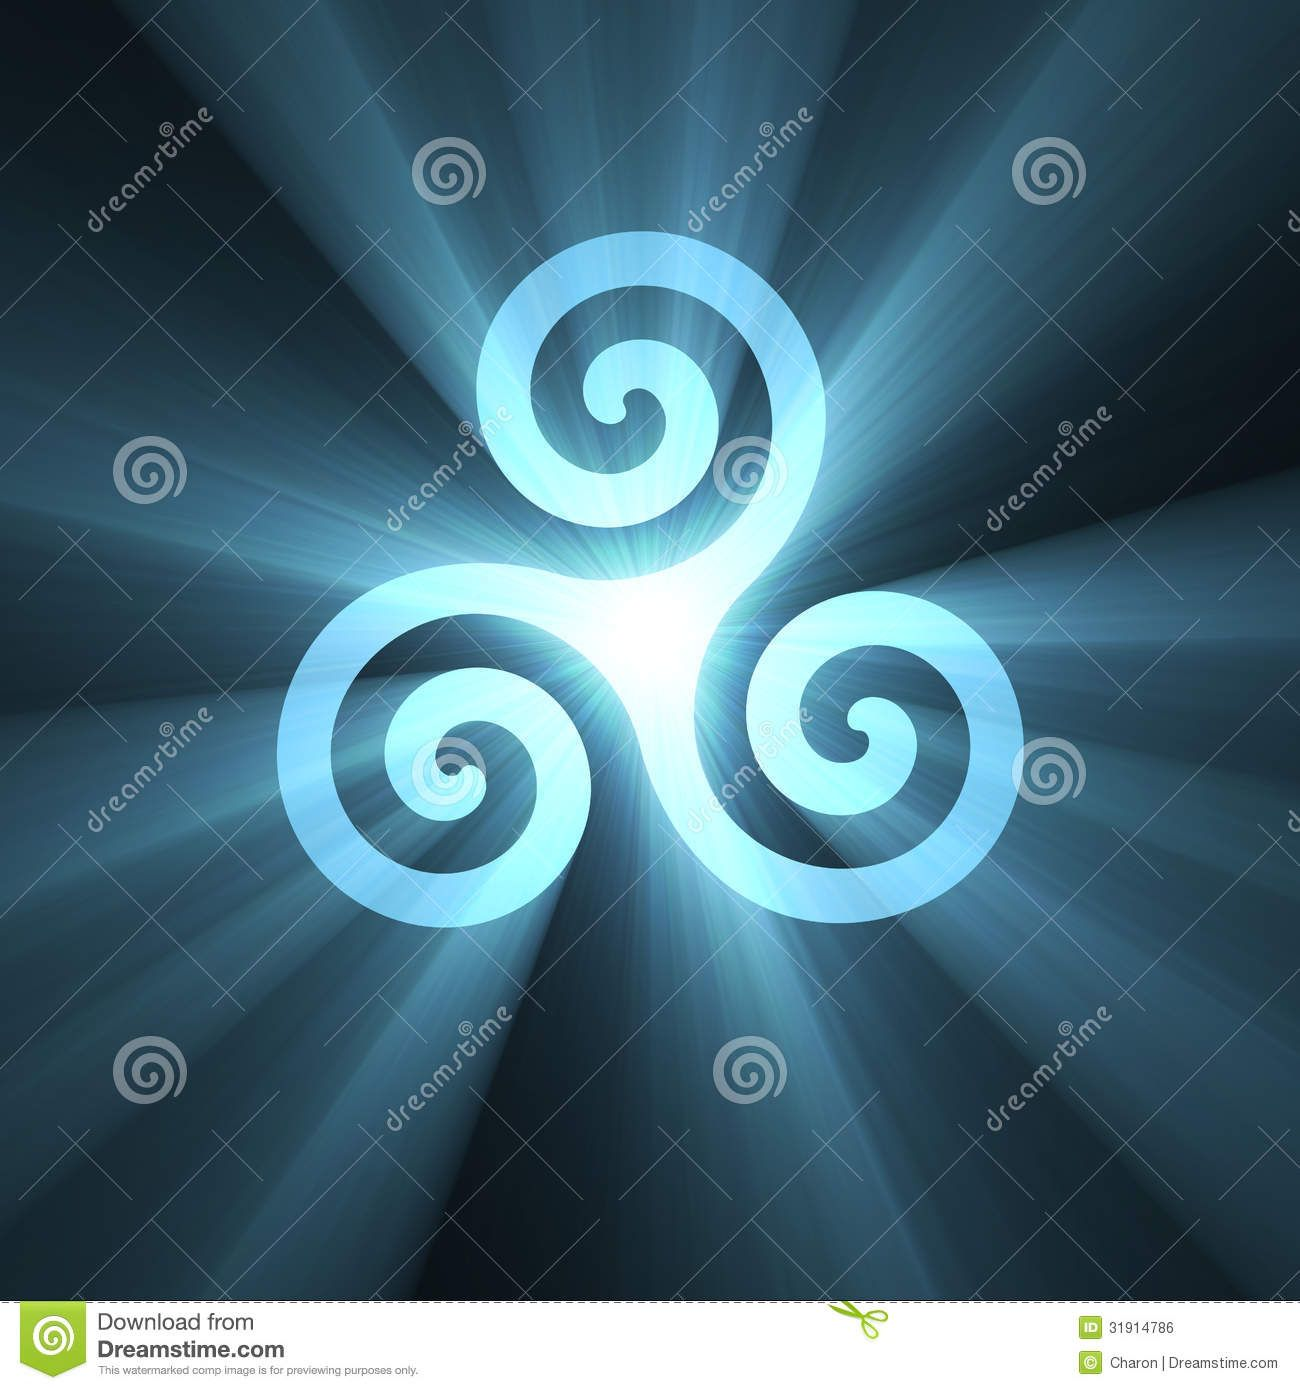 Triskelion Spiral Symbol Light Flare - Download From Over 53 Million High Quality Stock Photos, Images, Vectors. Sign up for FREE today. Image: 31914786